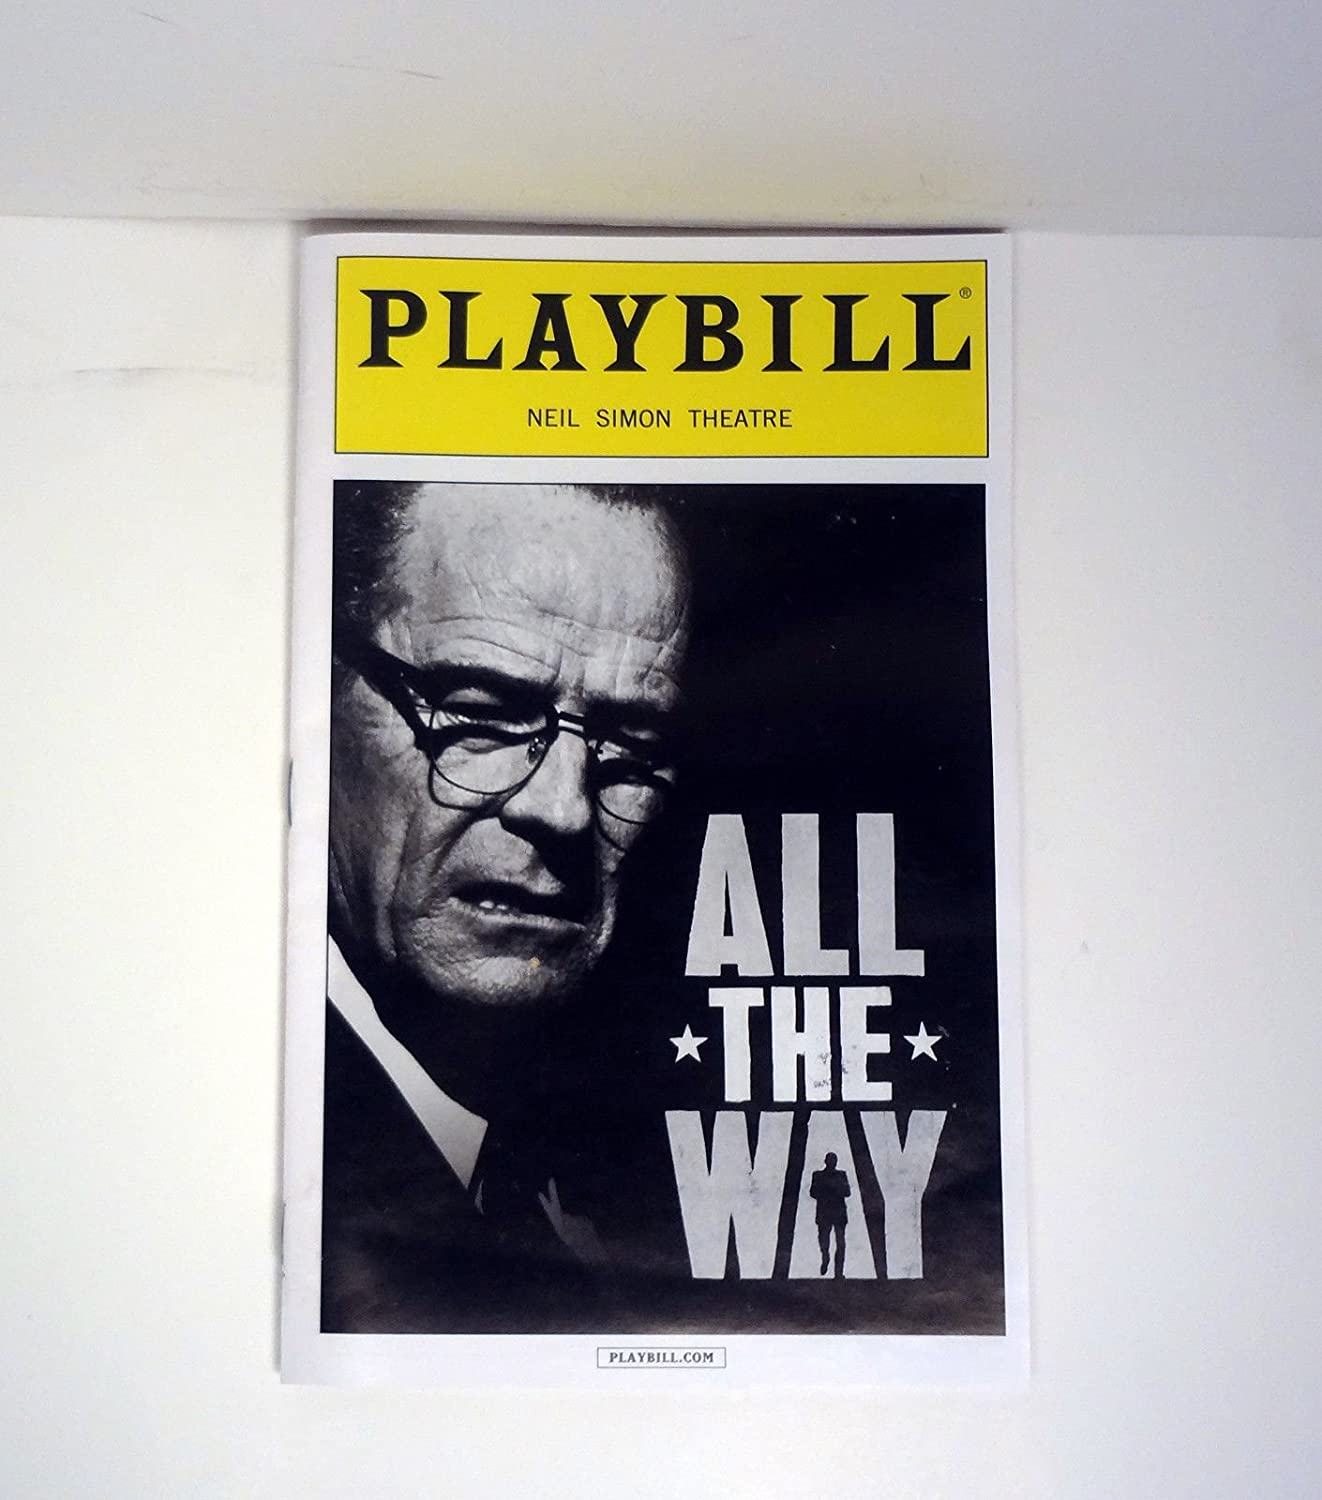 Bryan Cranston LBJ All The Way 2014 Broadway Playbill